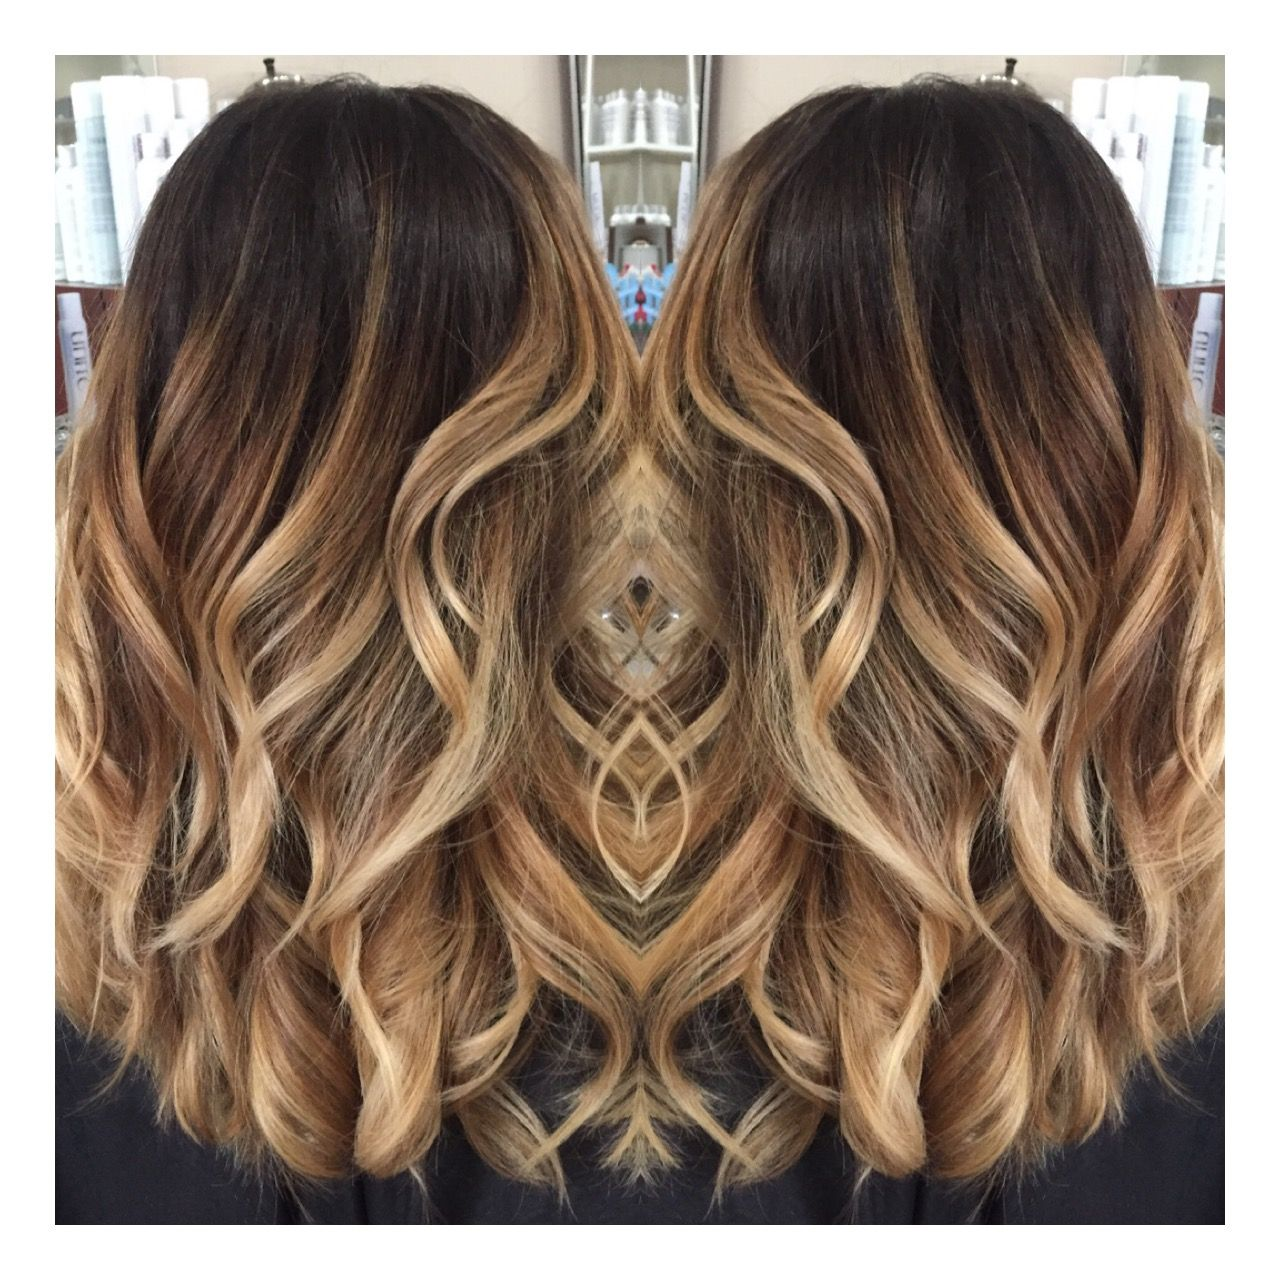 Seamless subtle ombre dark ombre contrast ribbons Balayage